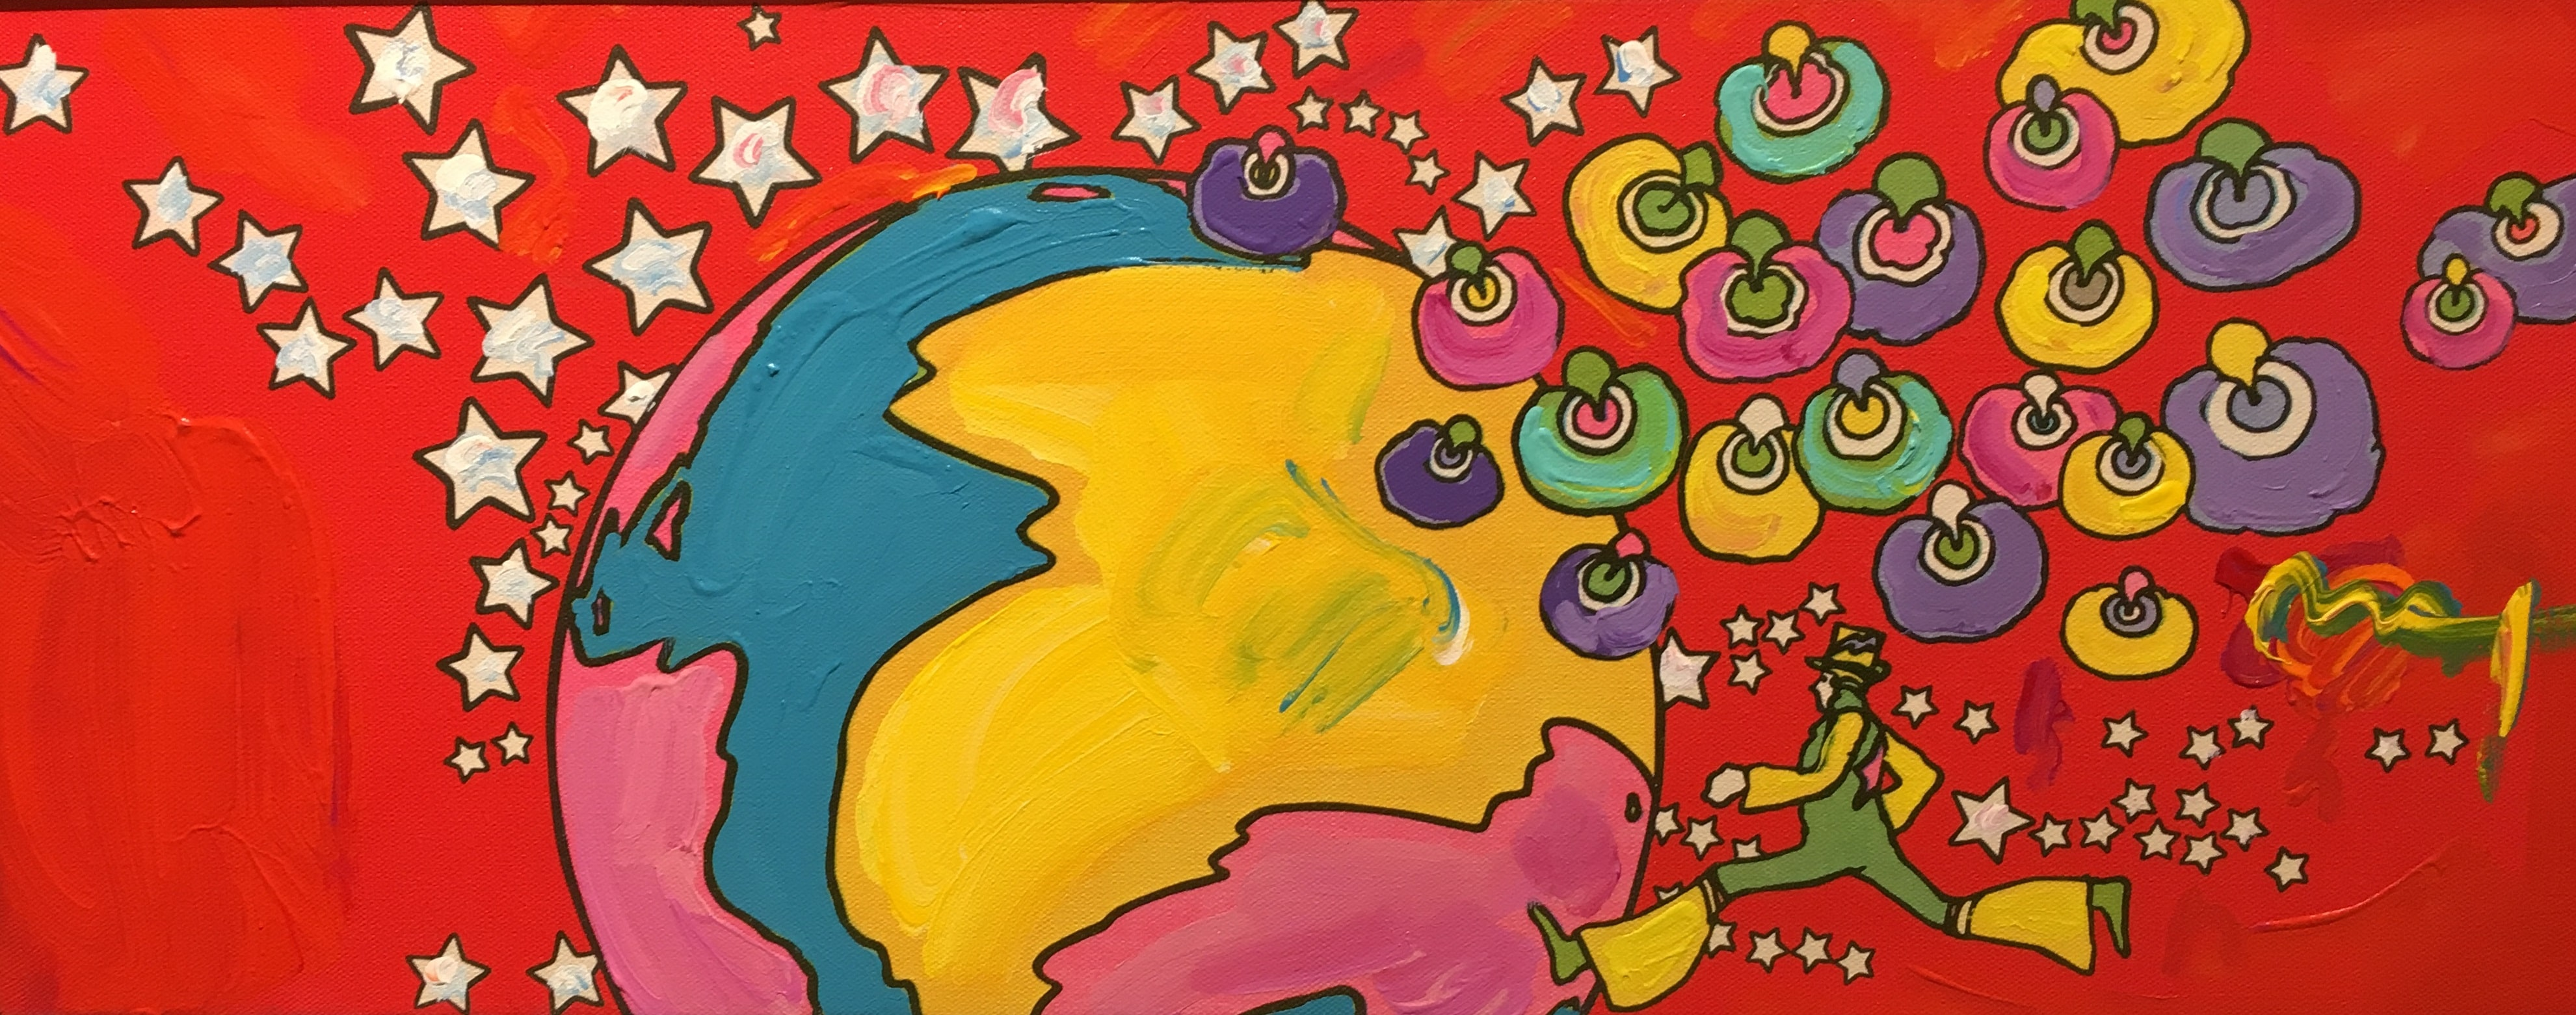 Peter Max, art quotes